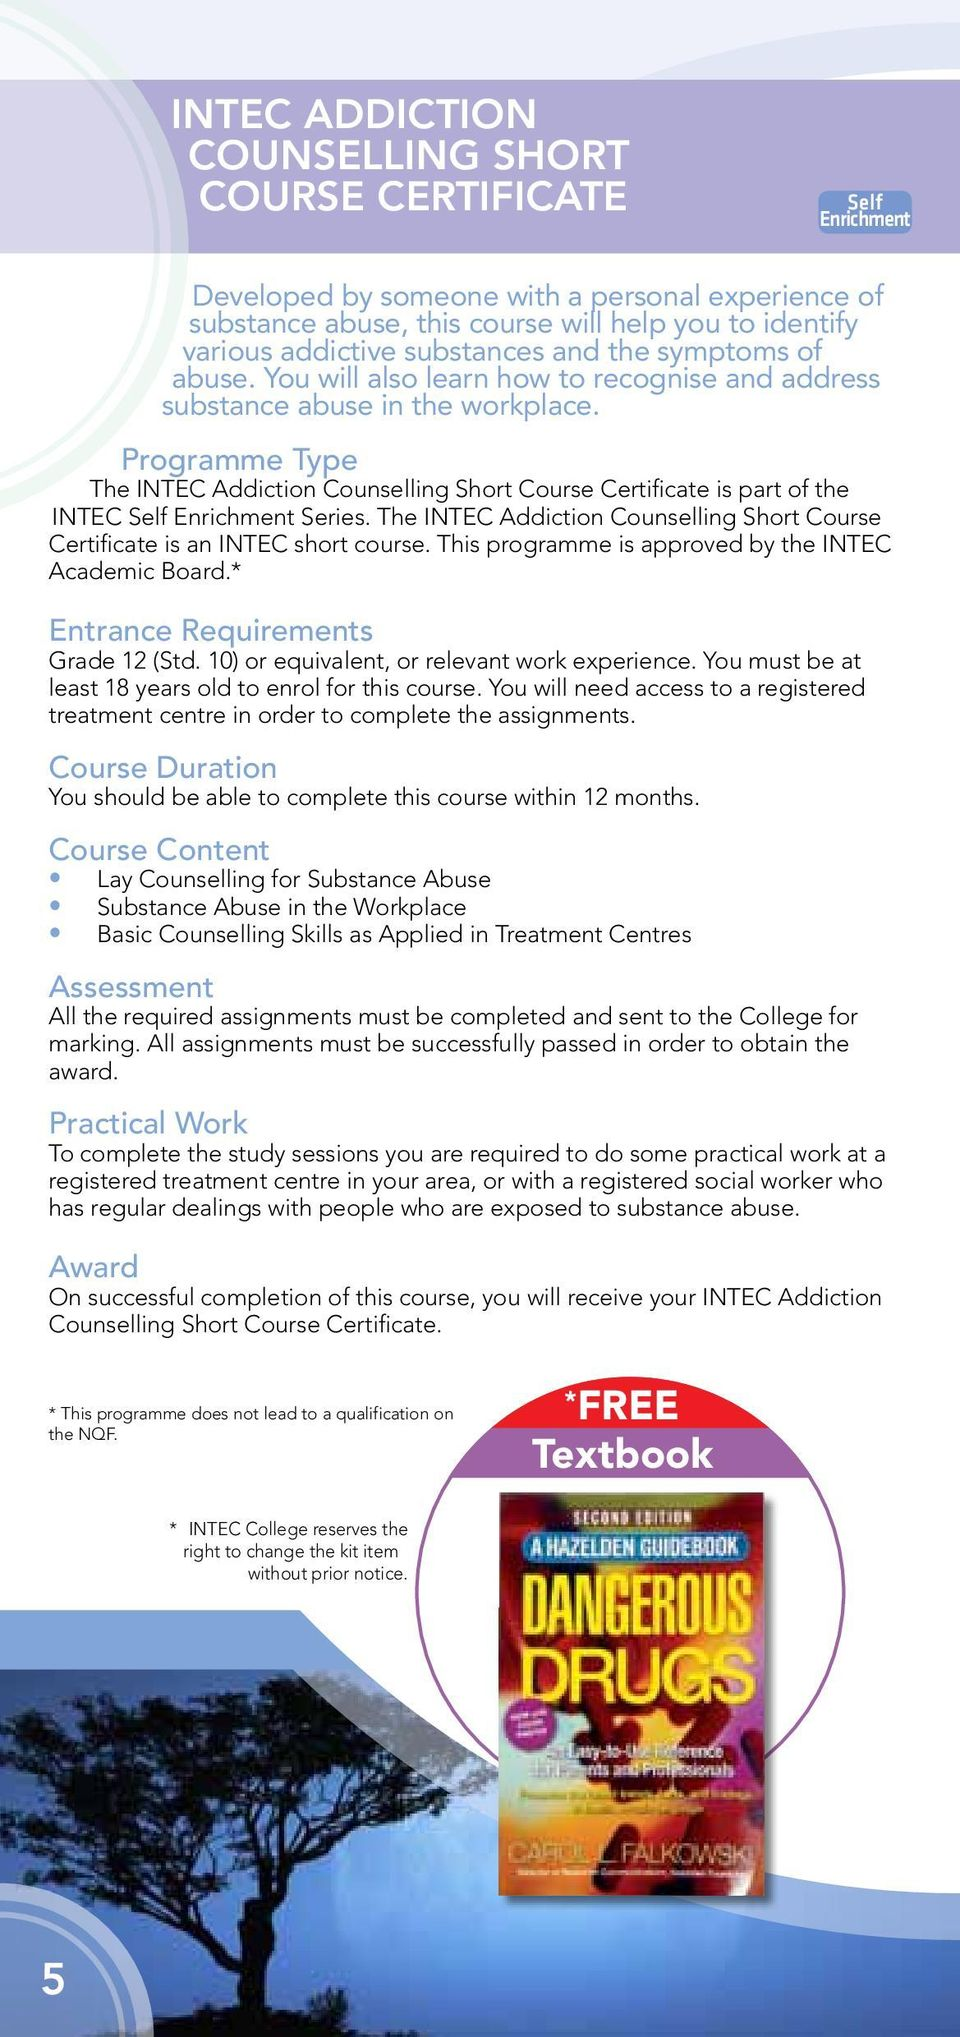 Programme Type The INTEC Addiction Counselling Short Course Certificate is part of the INTEC Series. The INTEC Addiction Counselling Short Course Certificate is an INTEC short course.